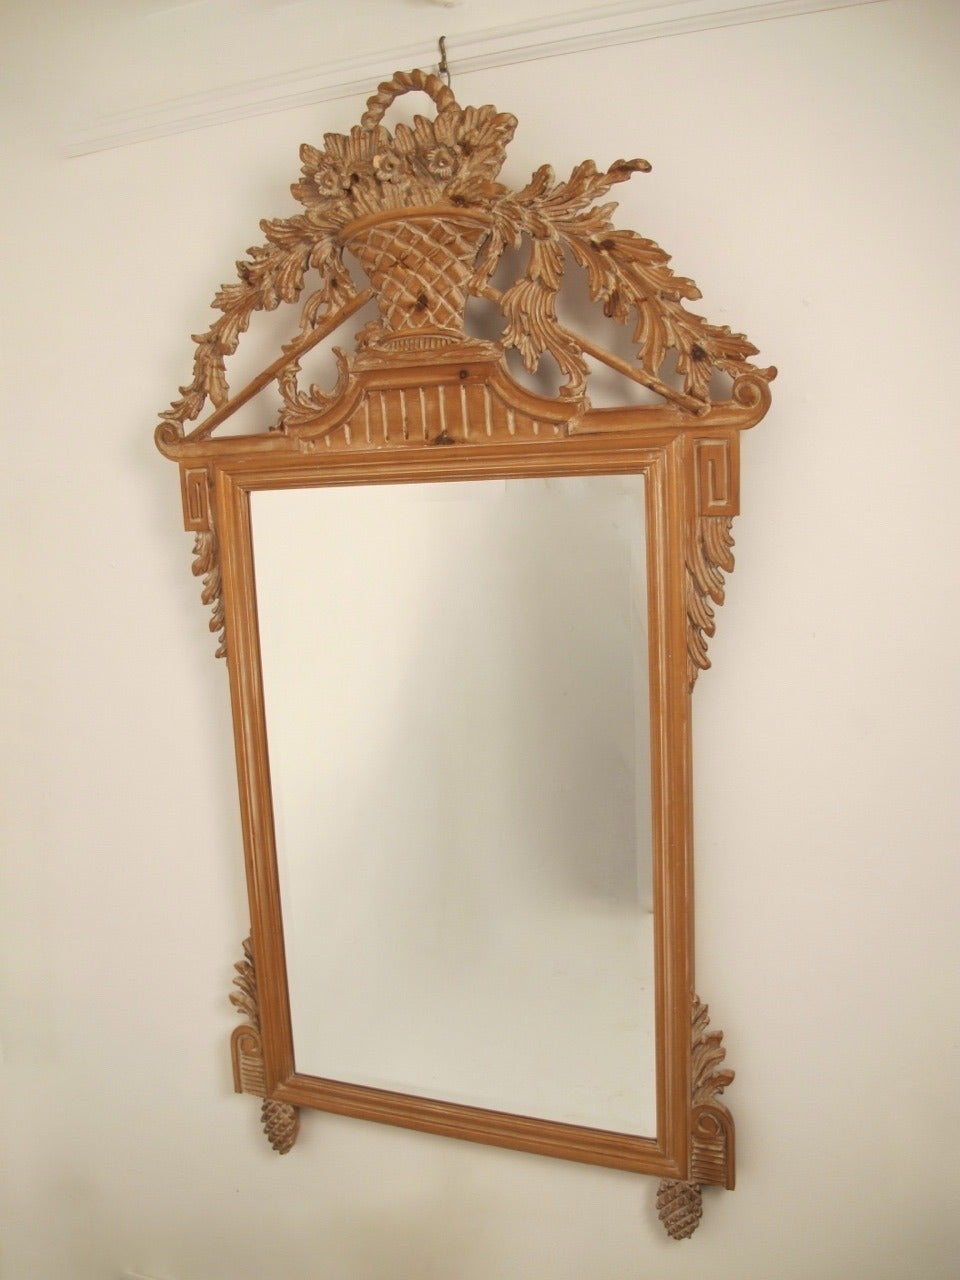 An elaborately hand-carved pine frame with beveled glass mirror and white washed finish. Centre topped by a basket of flowers, scrolling acanthus leaves draping down both sides and flanked by Greek key blocks, ending on pineapple feet. Symbols of